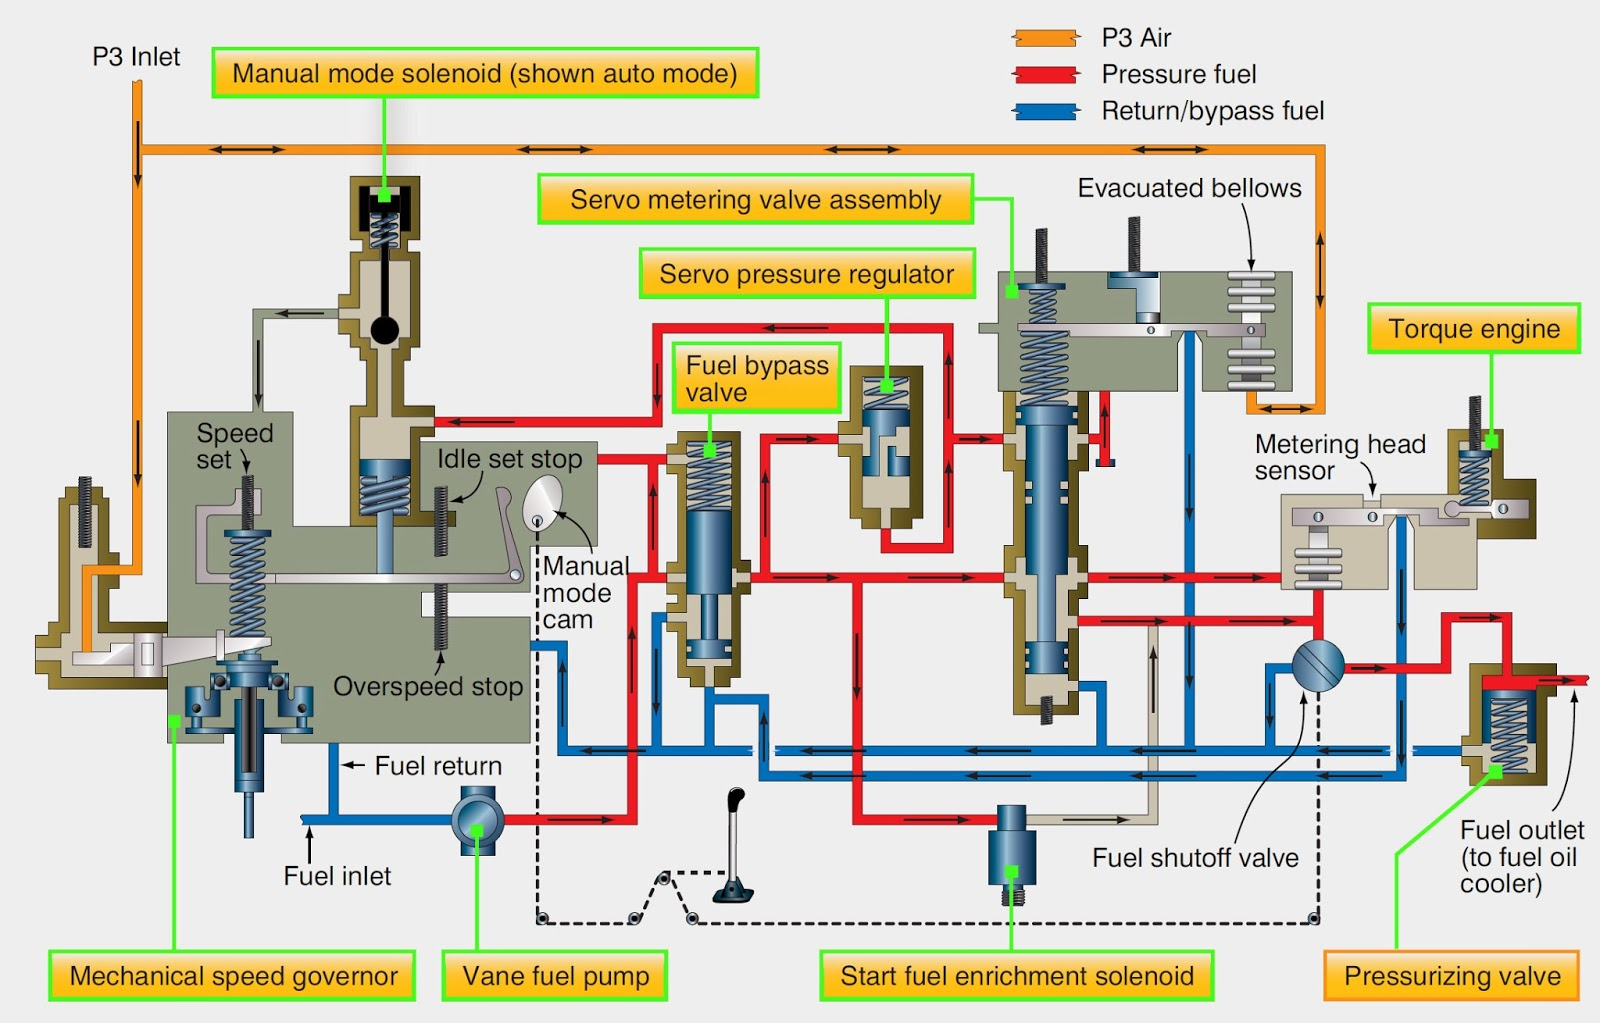 Fuel+control+assembly+schematic+hydomechanical+electronic aircraft systems turbine engine fuel system general requirements bpc-1 dual fuel control wiring diagram at readyjetset.co